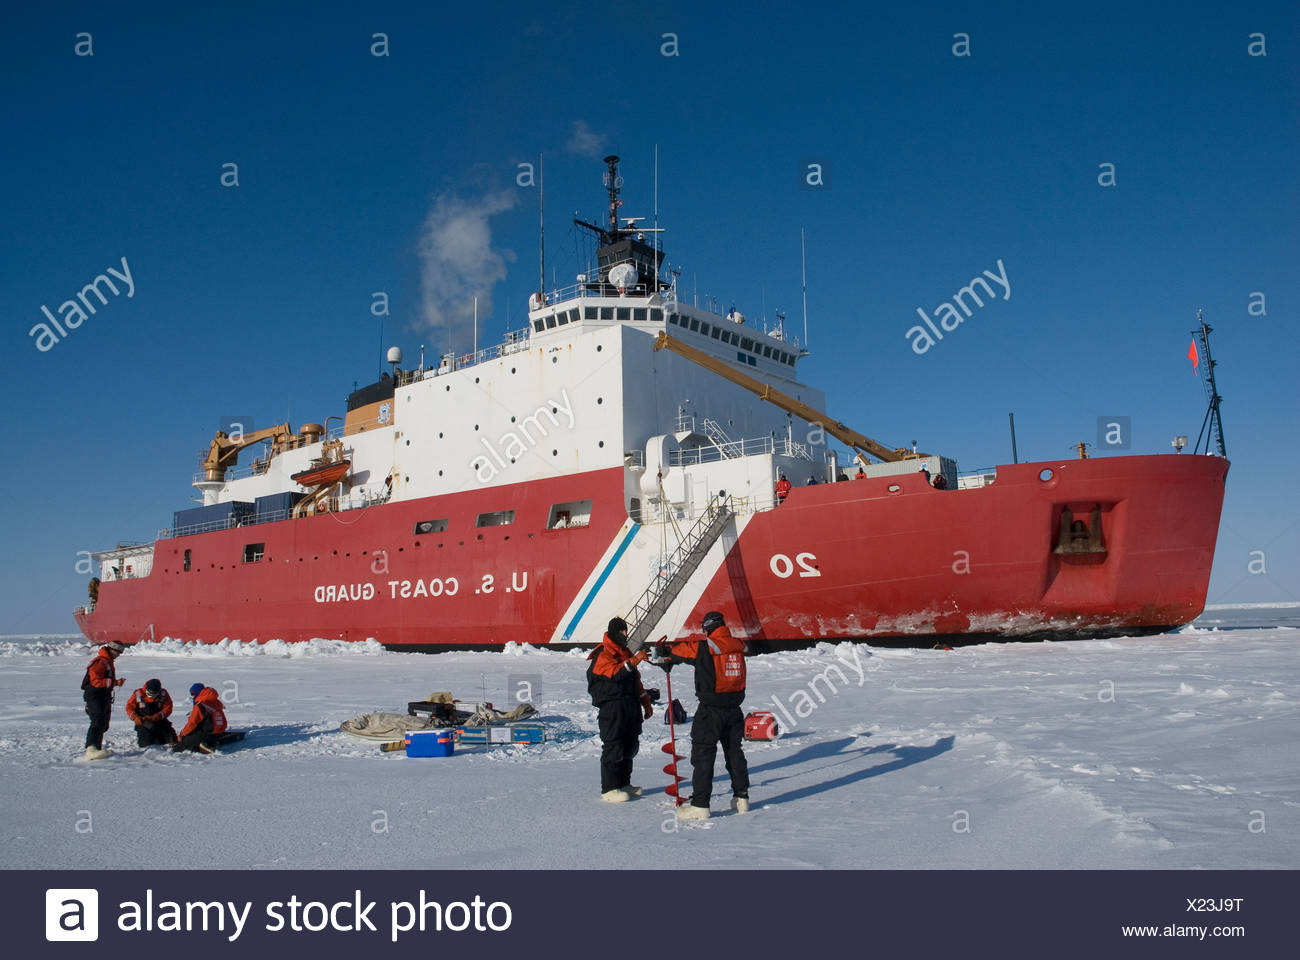 Alaska, Bering Sea. Scientents disembark from a US Coast Guard icebreaker to perform ice-coring tests on the pack ice. Winter. - Stock Image